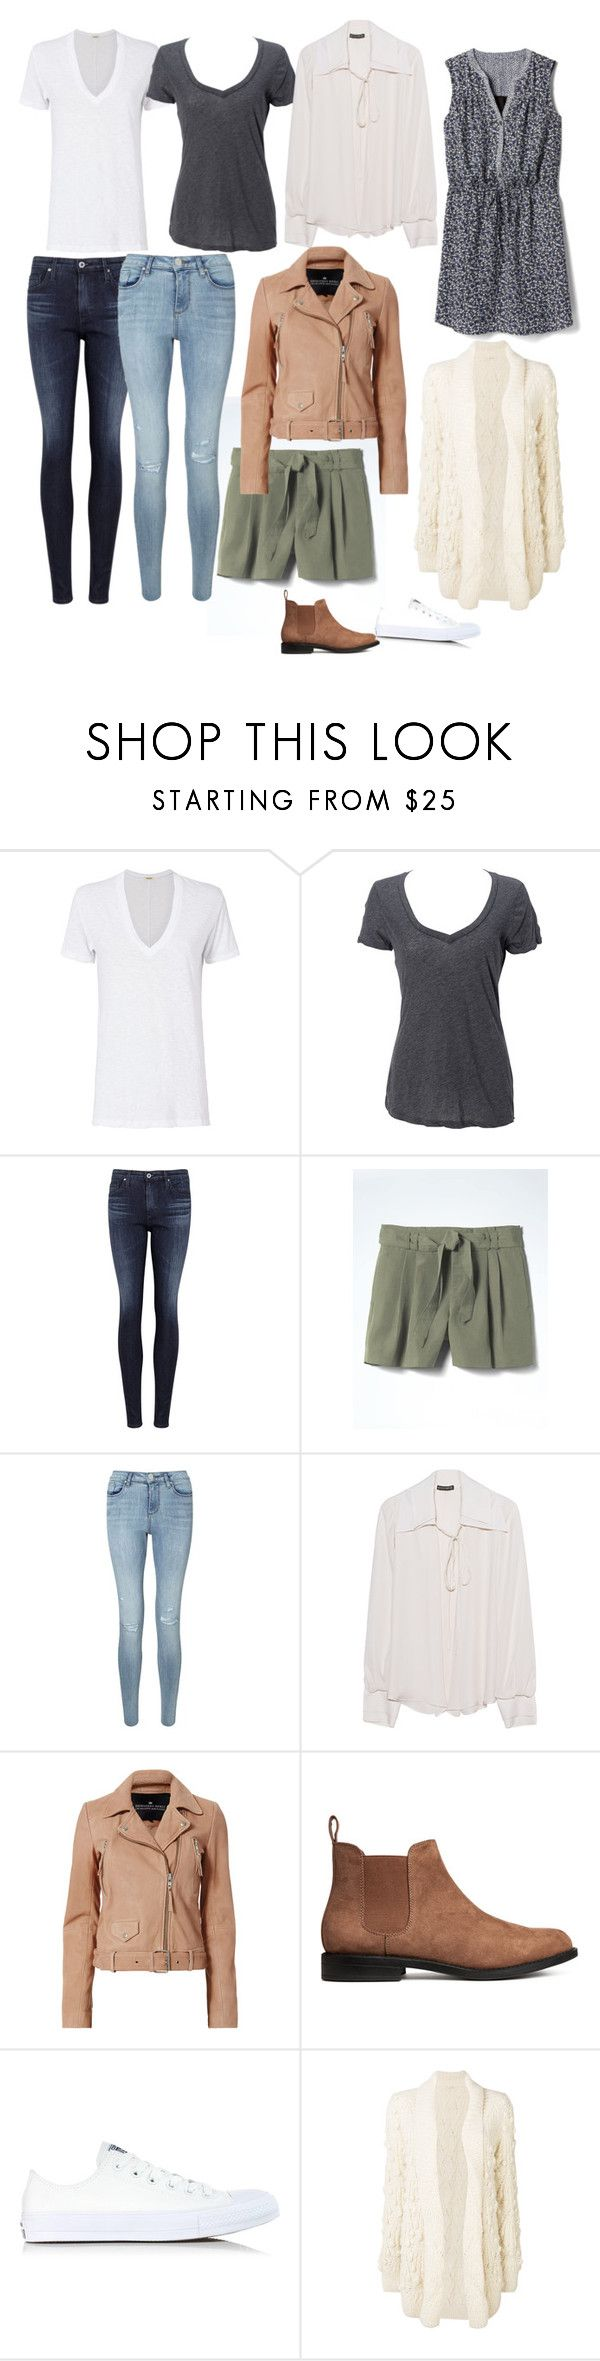 """""""I own 9 pieces of clothing"""" by cheryl-eisenschmid on Polyvore featuring Monrow, Simplex Apparel, AG Adriano Goldschmied, Banana Republic, Miss Selfridge, Plein Sud, Designers Remix, Converse, Ulla Johnson and Gap"""